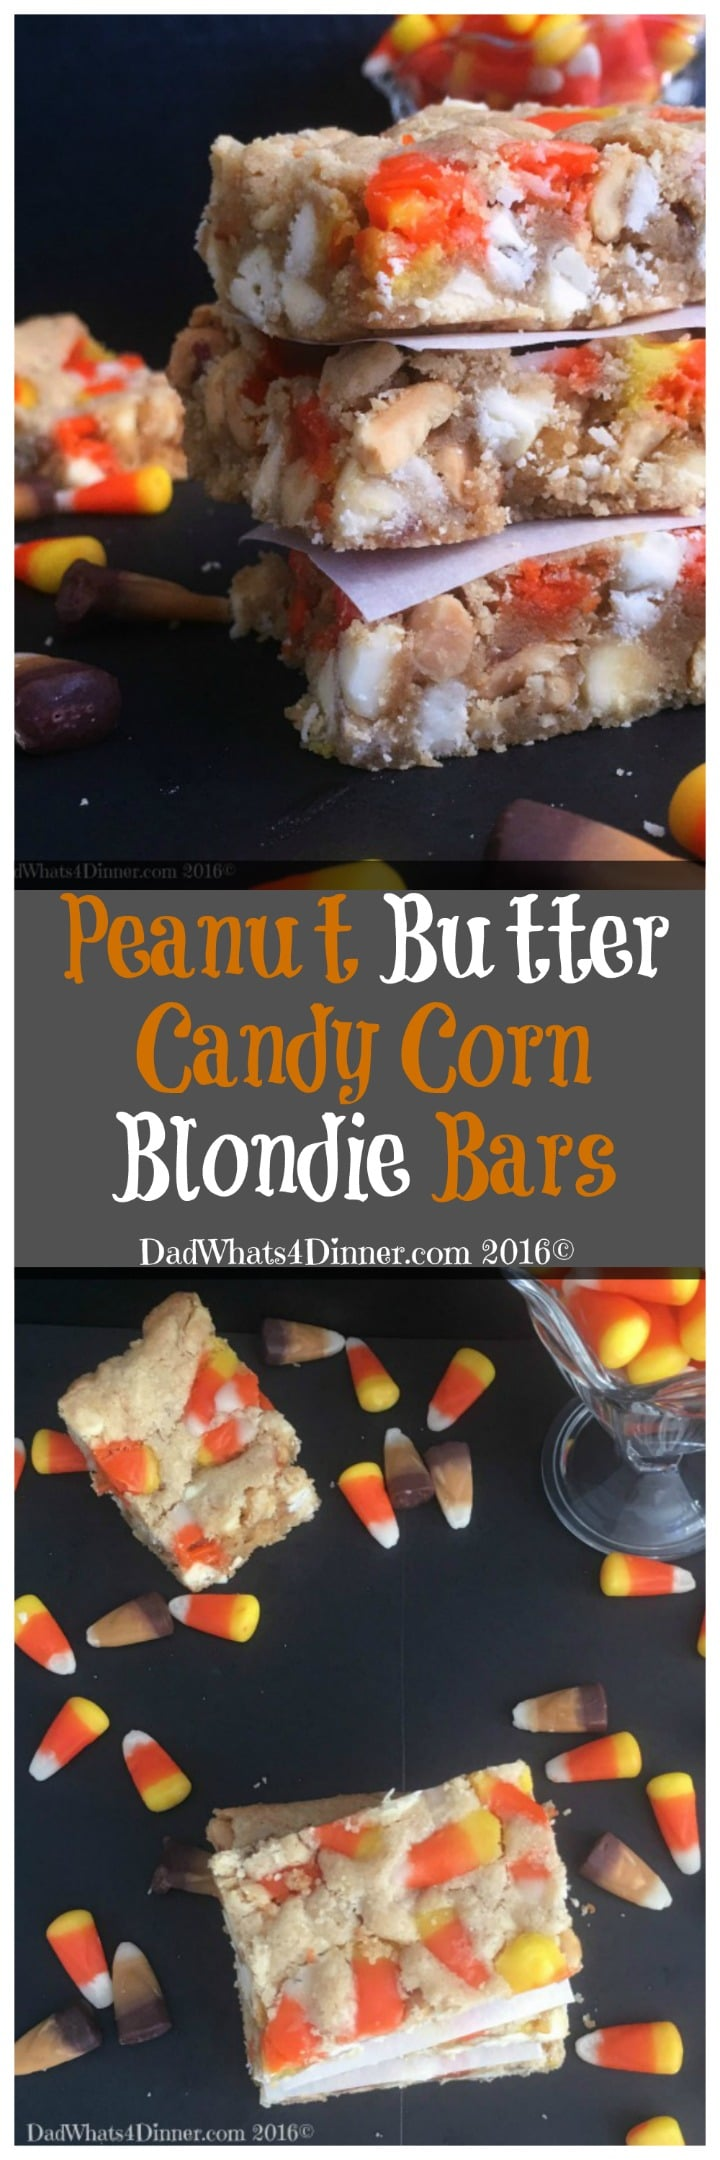 If you are craving a PayDay Candy Bar then you will love my Peanut Butter Candy Corn Blondie Bars. Great way to use up leftover Halloween candy. #candycorn #candy #bars #blondies #desserts #recipes #Halloween www.dadwhats4dinner.com